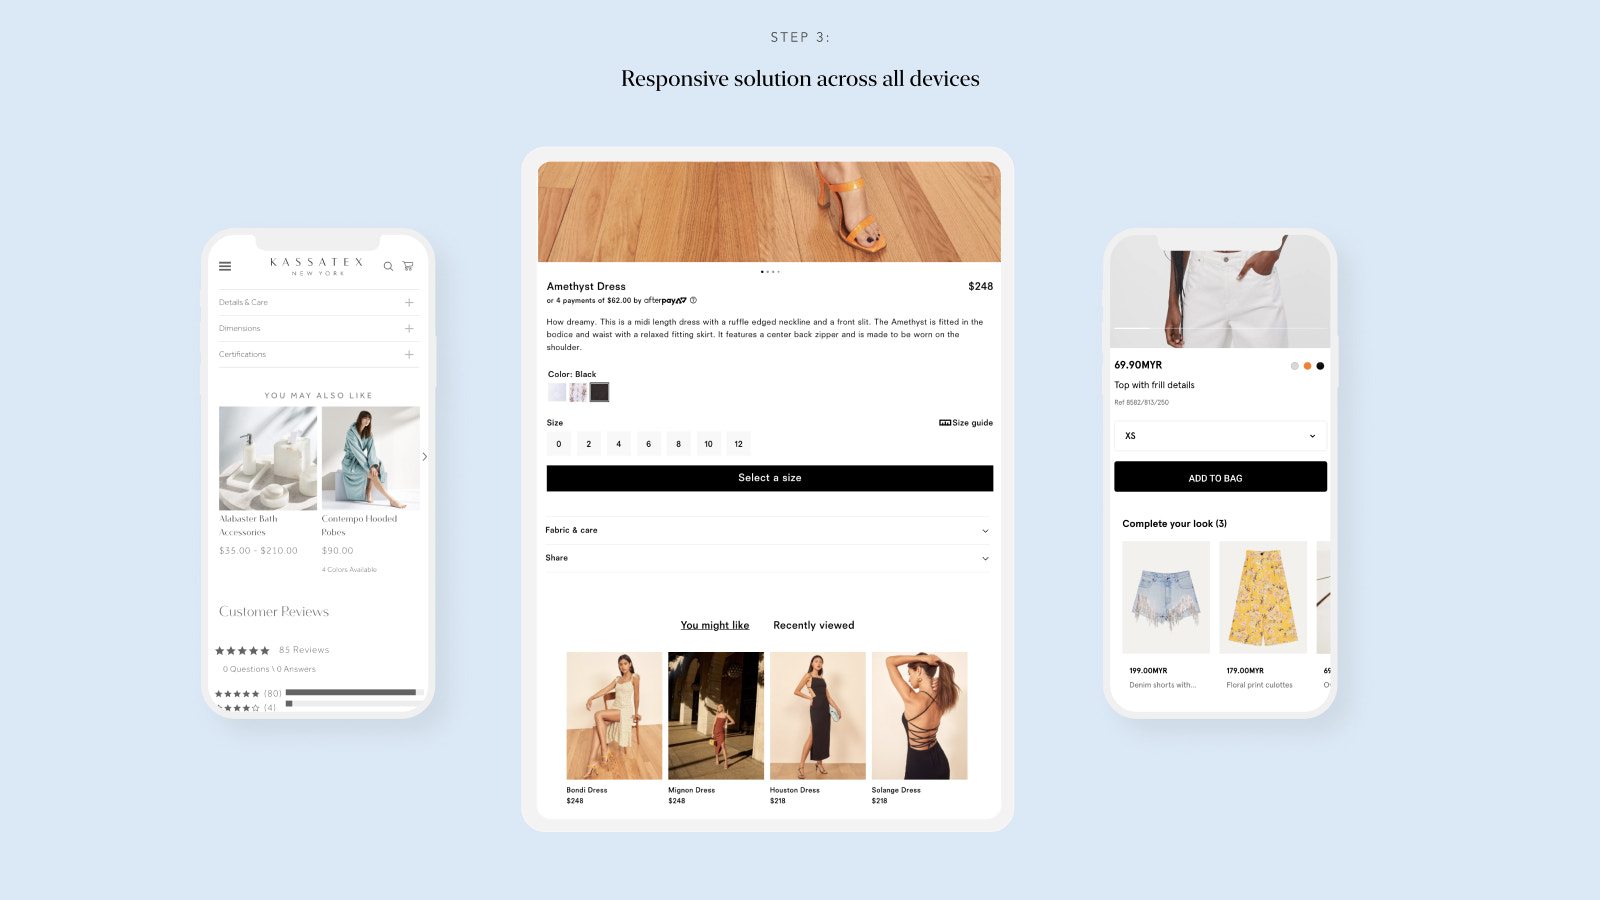 Responsive solution across all devices